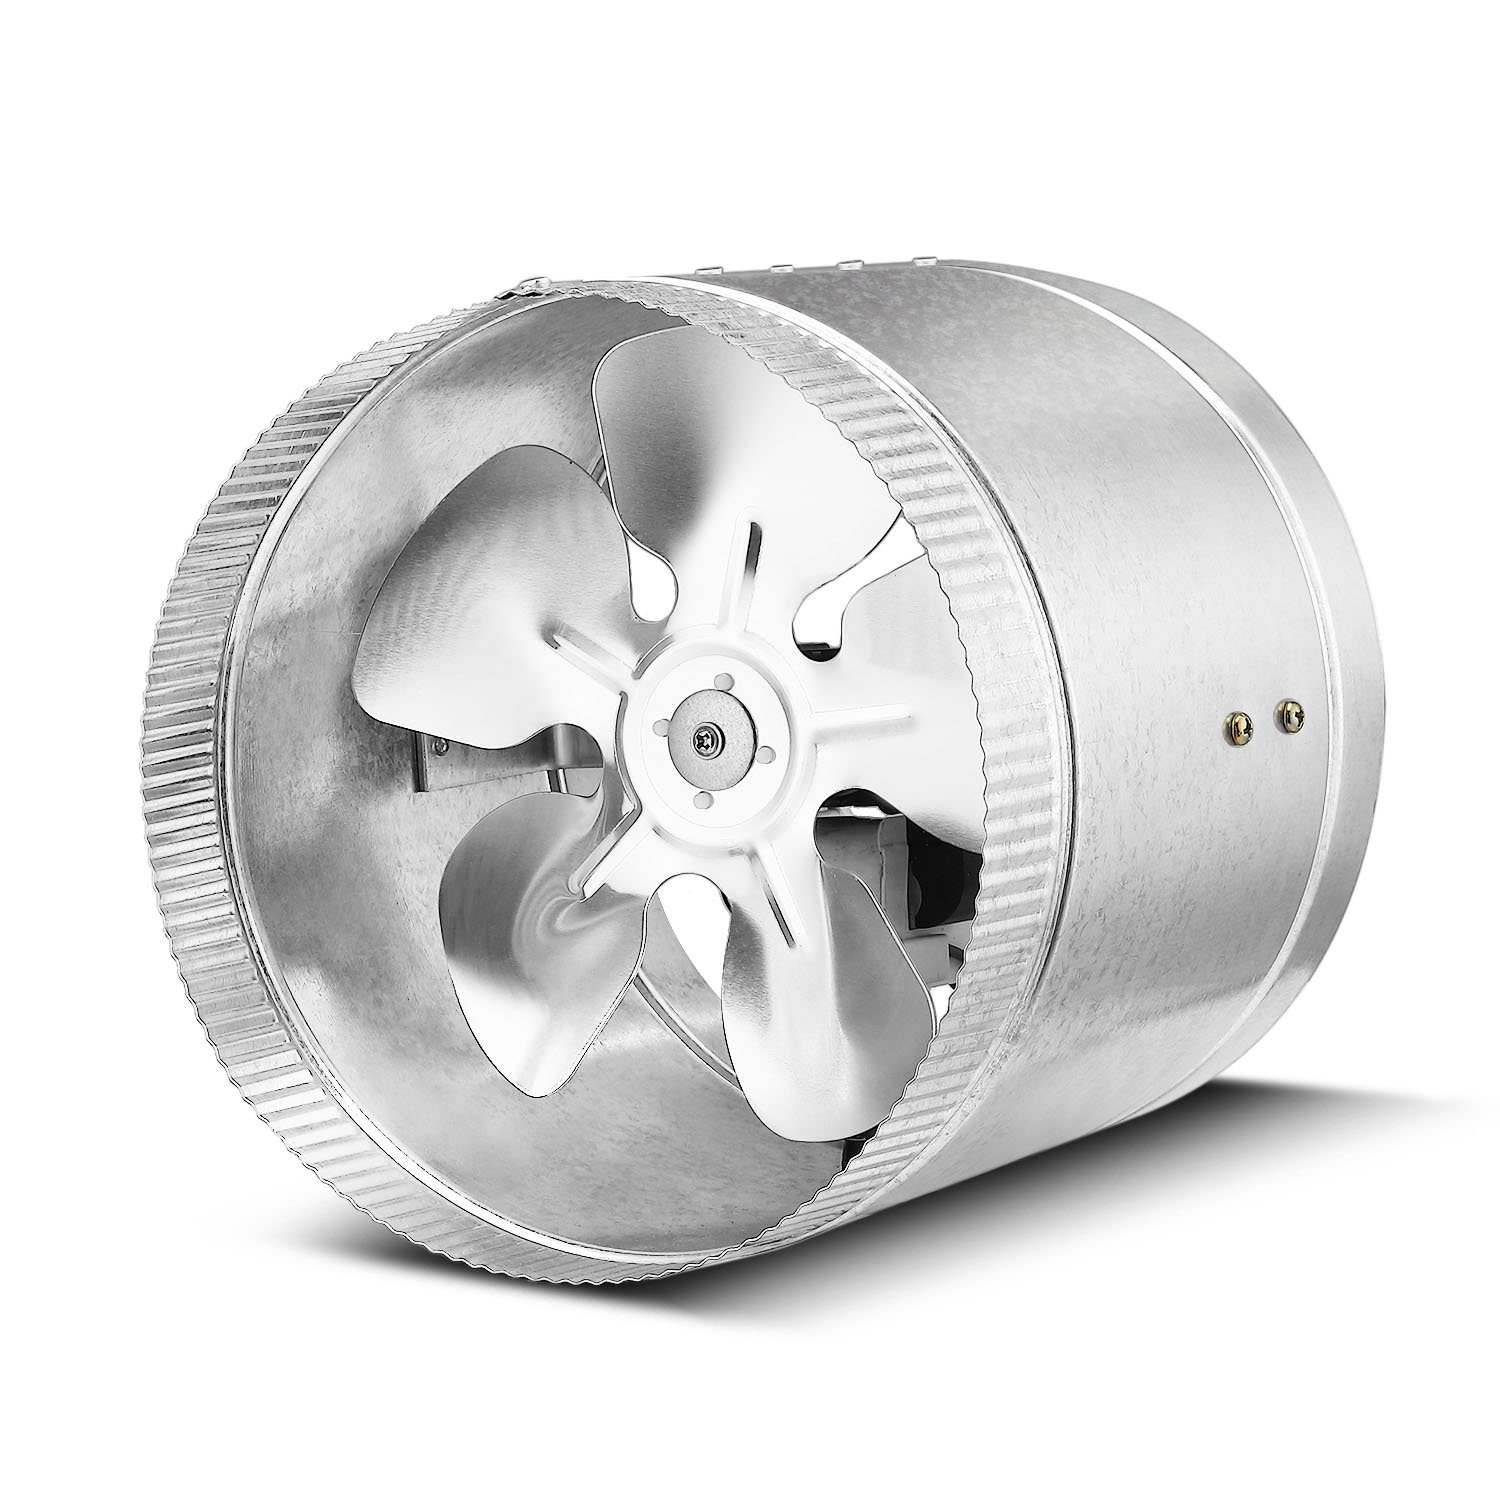 8 Inch, 420 CFM Flexzion Inline Duct Fan Booster Exhaust Blower Vent Air Extractor Ventilation System HVAC Low Noise Quiet Operation with Aluminum Blade /& Grounded Power Cord